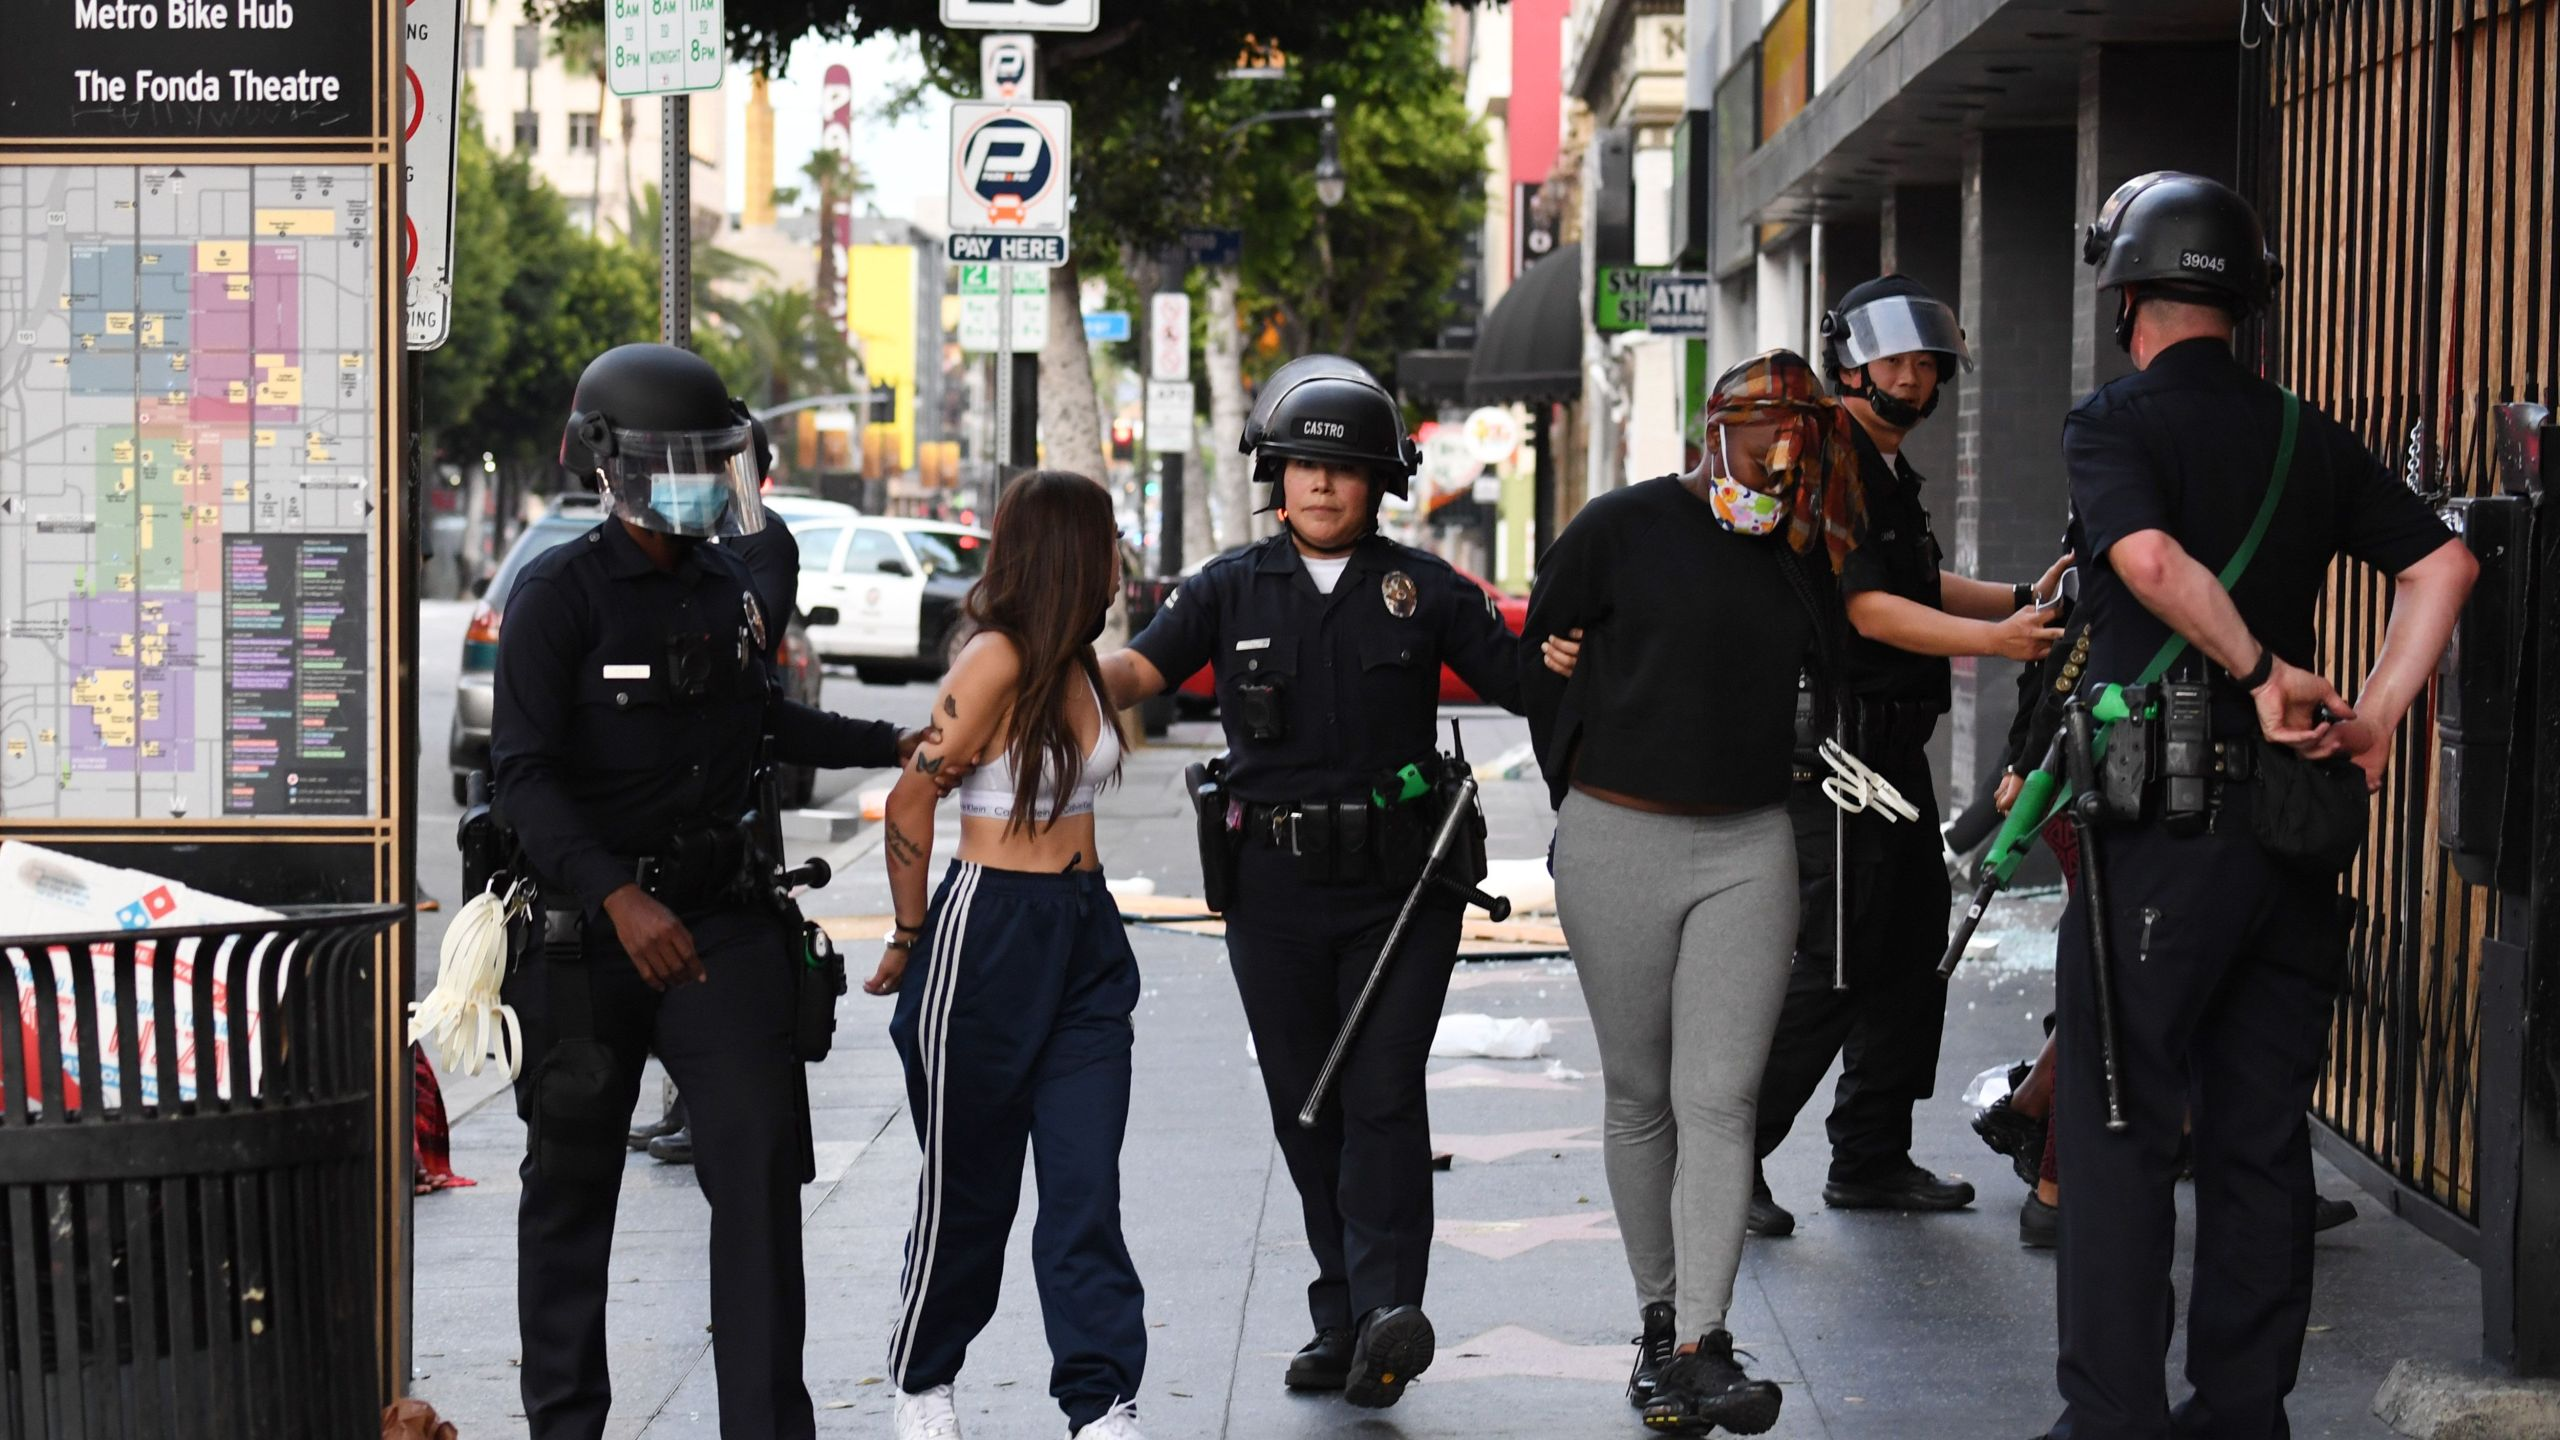 Police officers arrest people after a store was looted in Hollywood on June 1, 2020, after a third day of protests and looting throughout California. (ROBYN BECK/AFP via Getty Images)